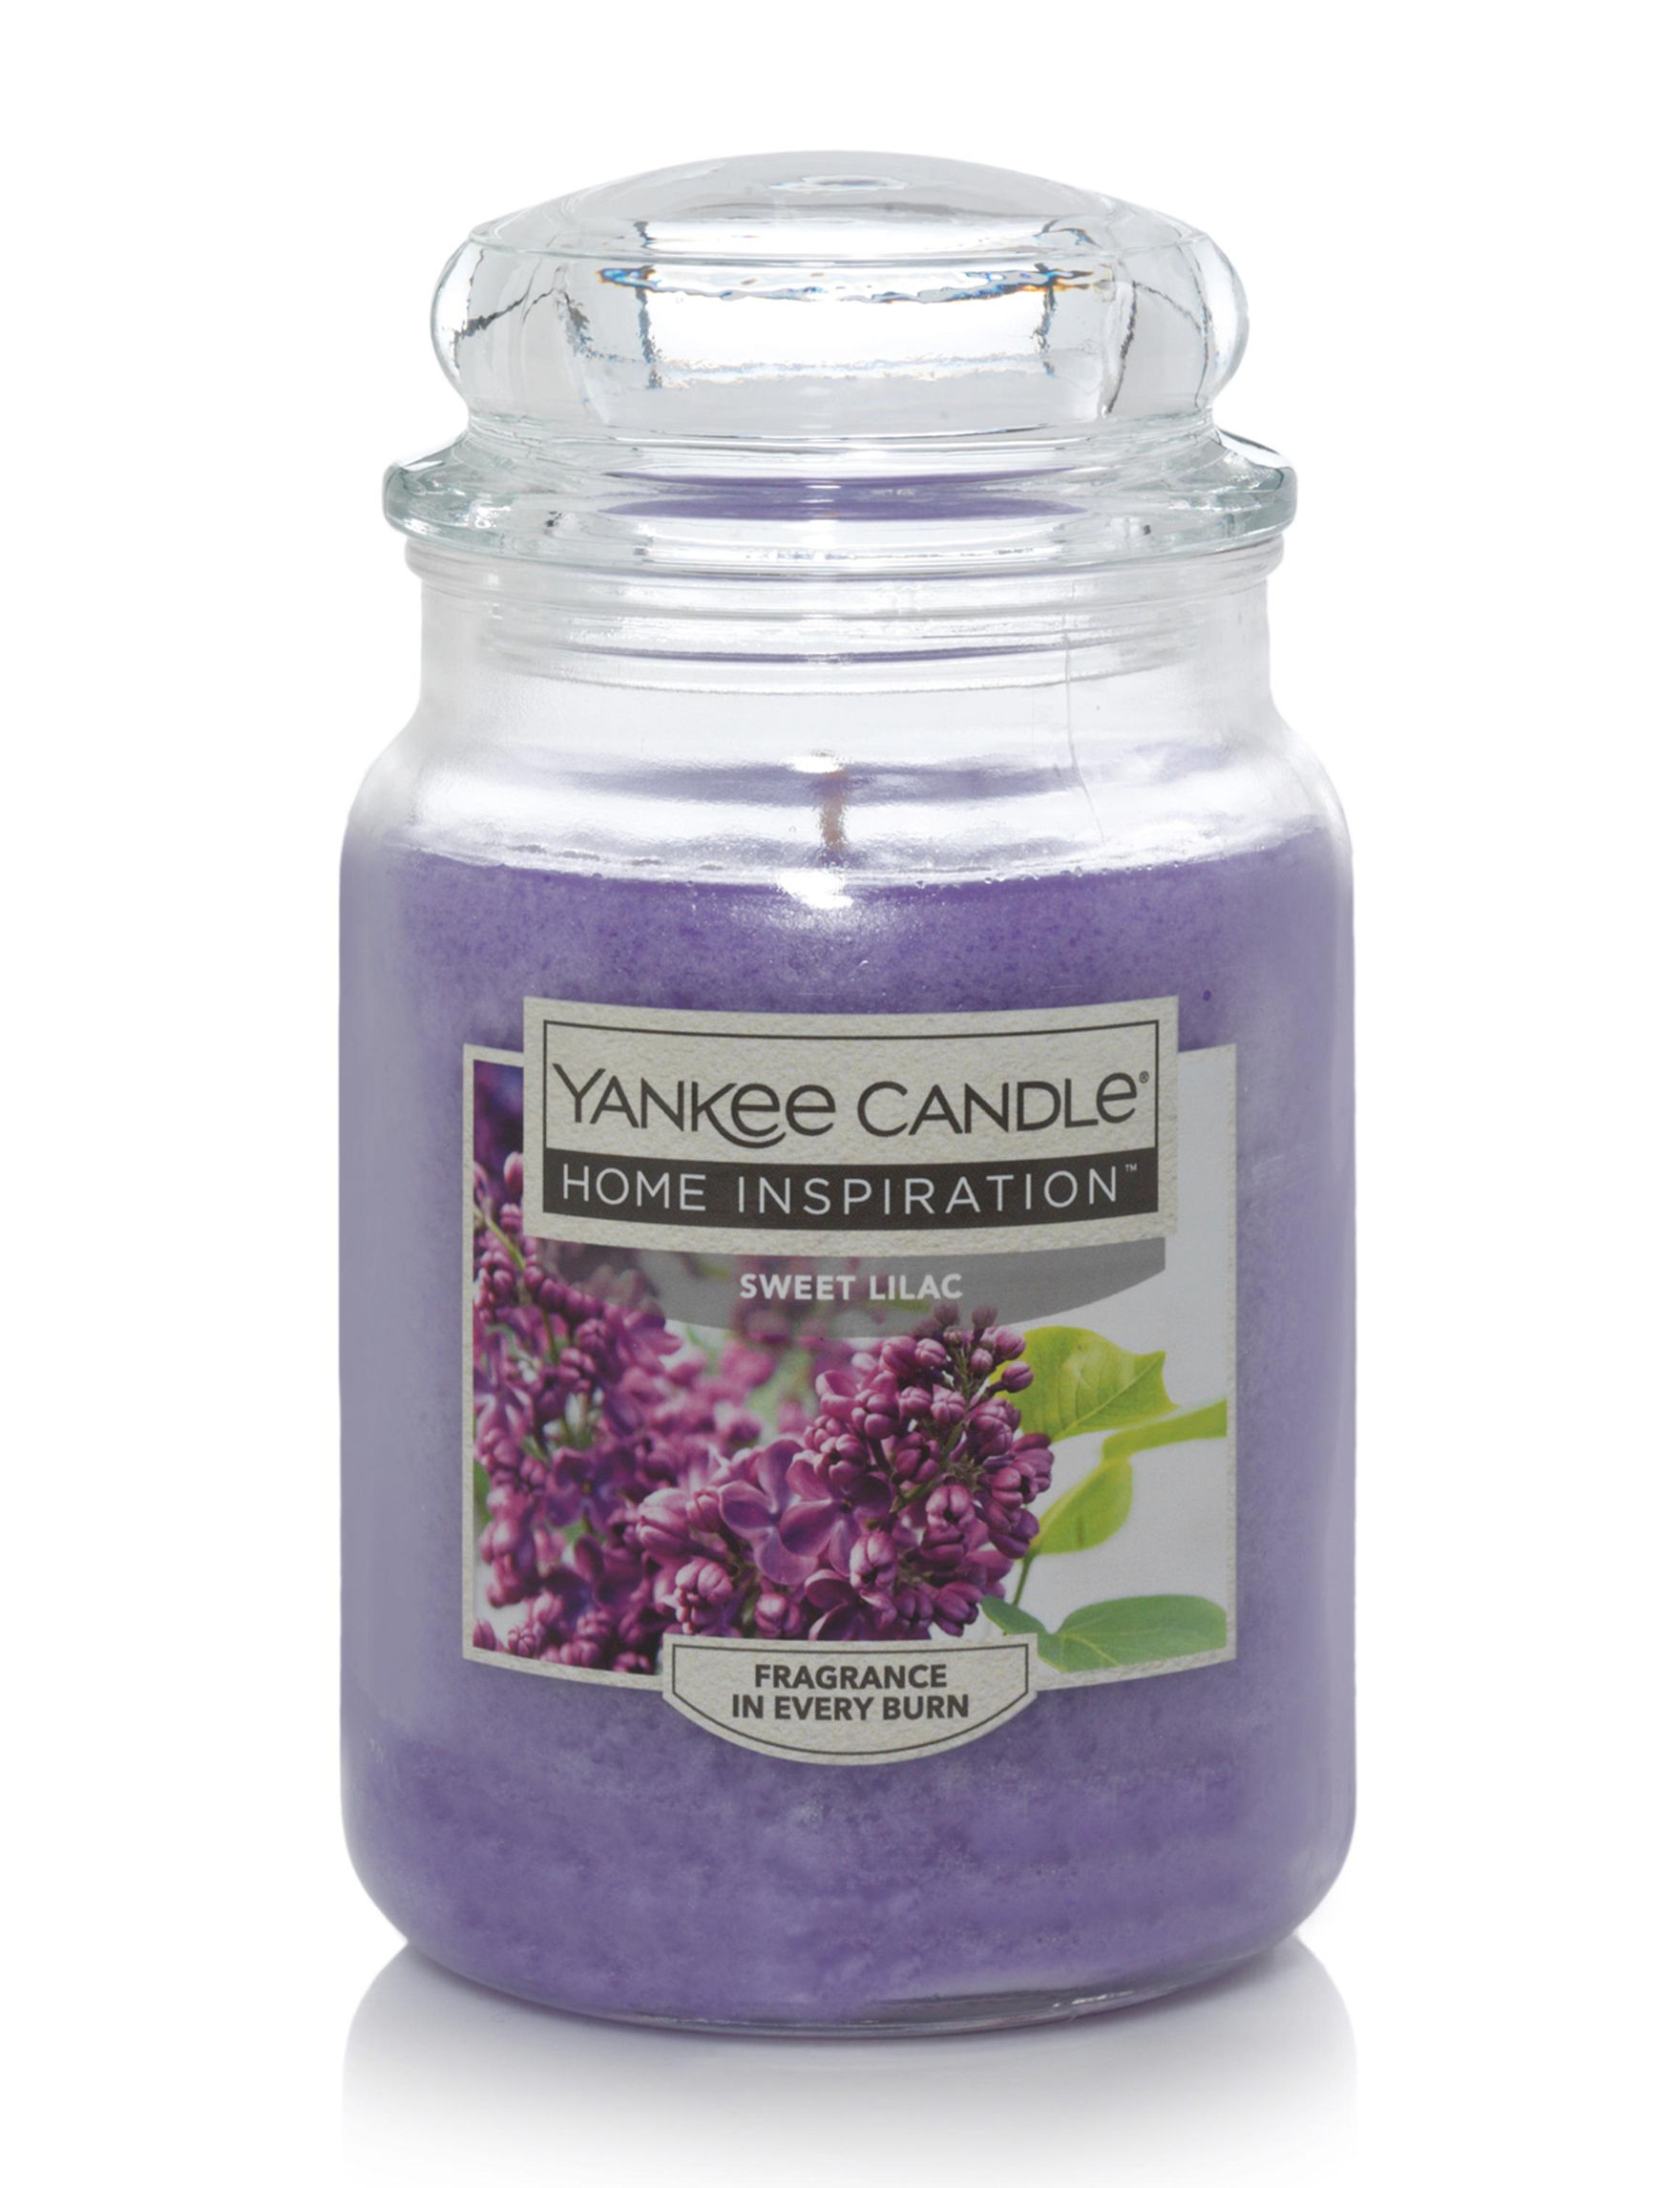 Yankee Candle Purple Candles Candles & Diffusers